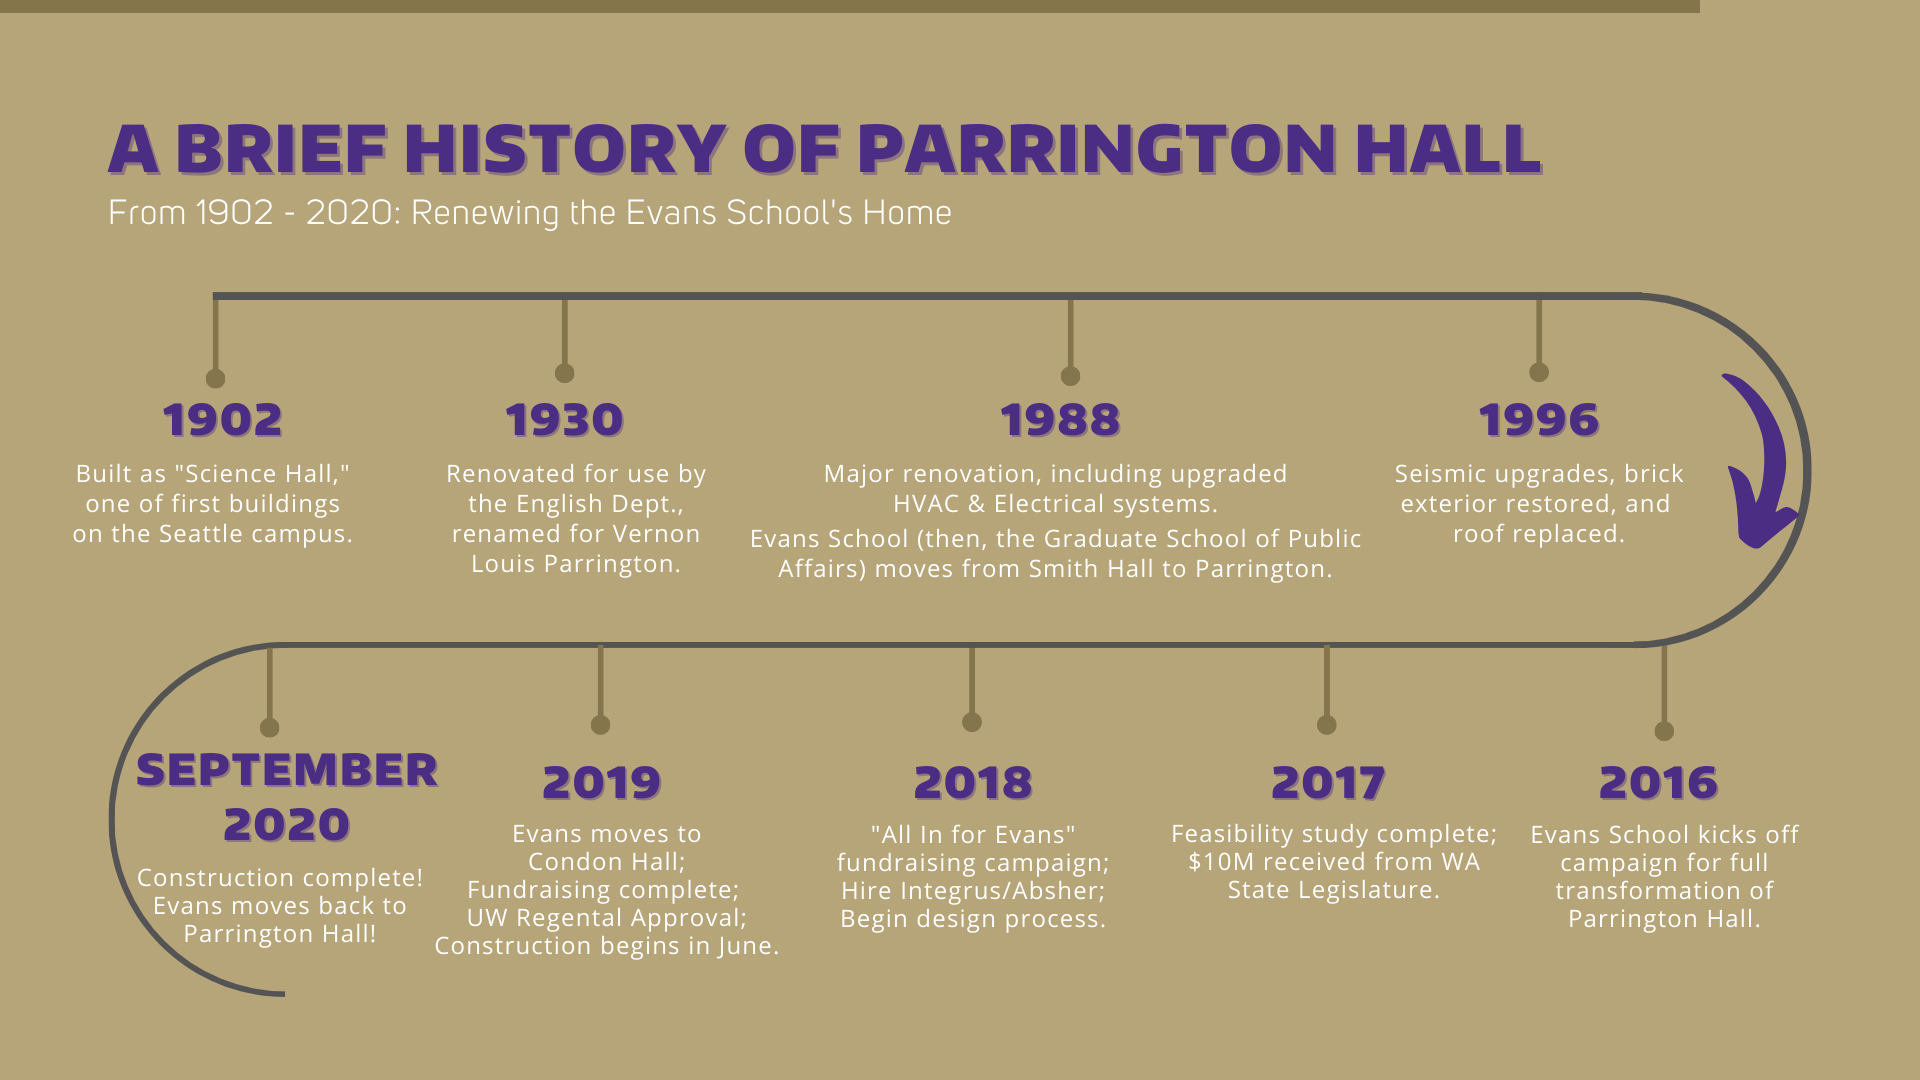 A Brief History of Parrington Hall